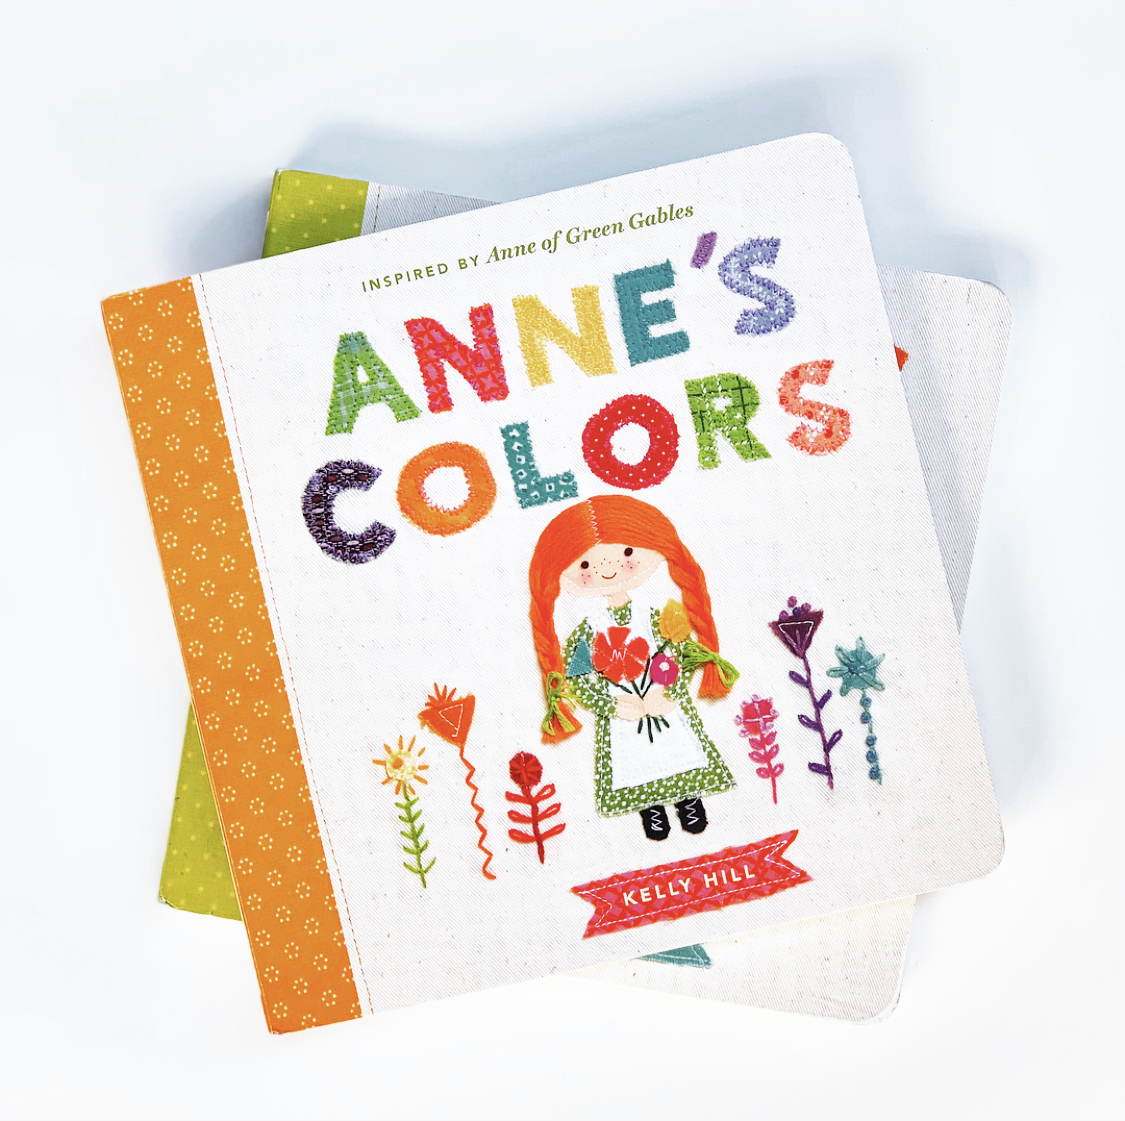 Anne's Colors  teaches colors ranging from pink to blue to white to green. Each color is displayed with a charming companion illustration on the opposing page.